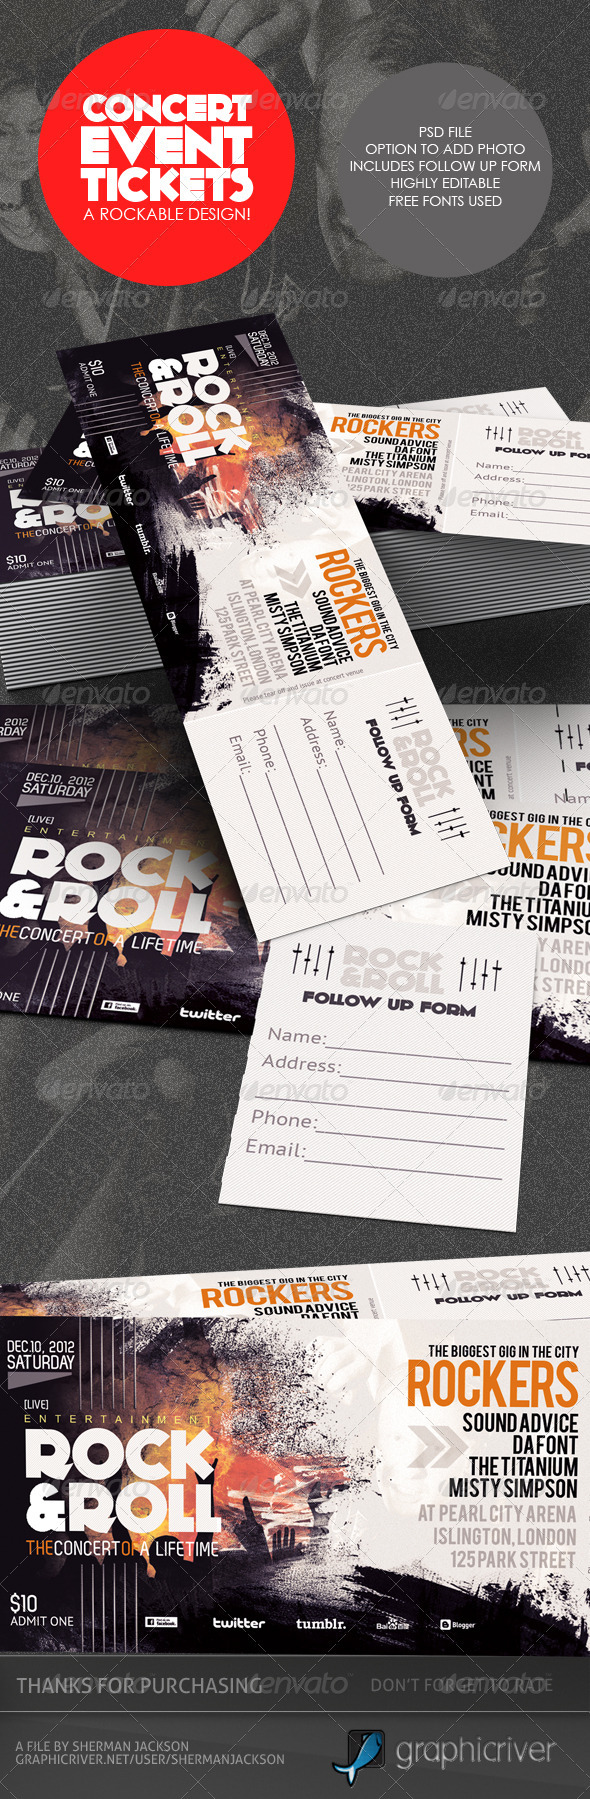 Microsoft Word Event Ticket Template from previews.customer.envatousercontent.com